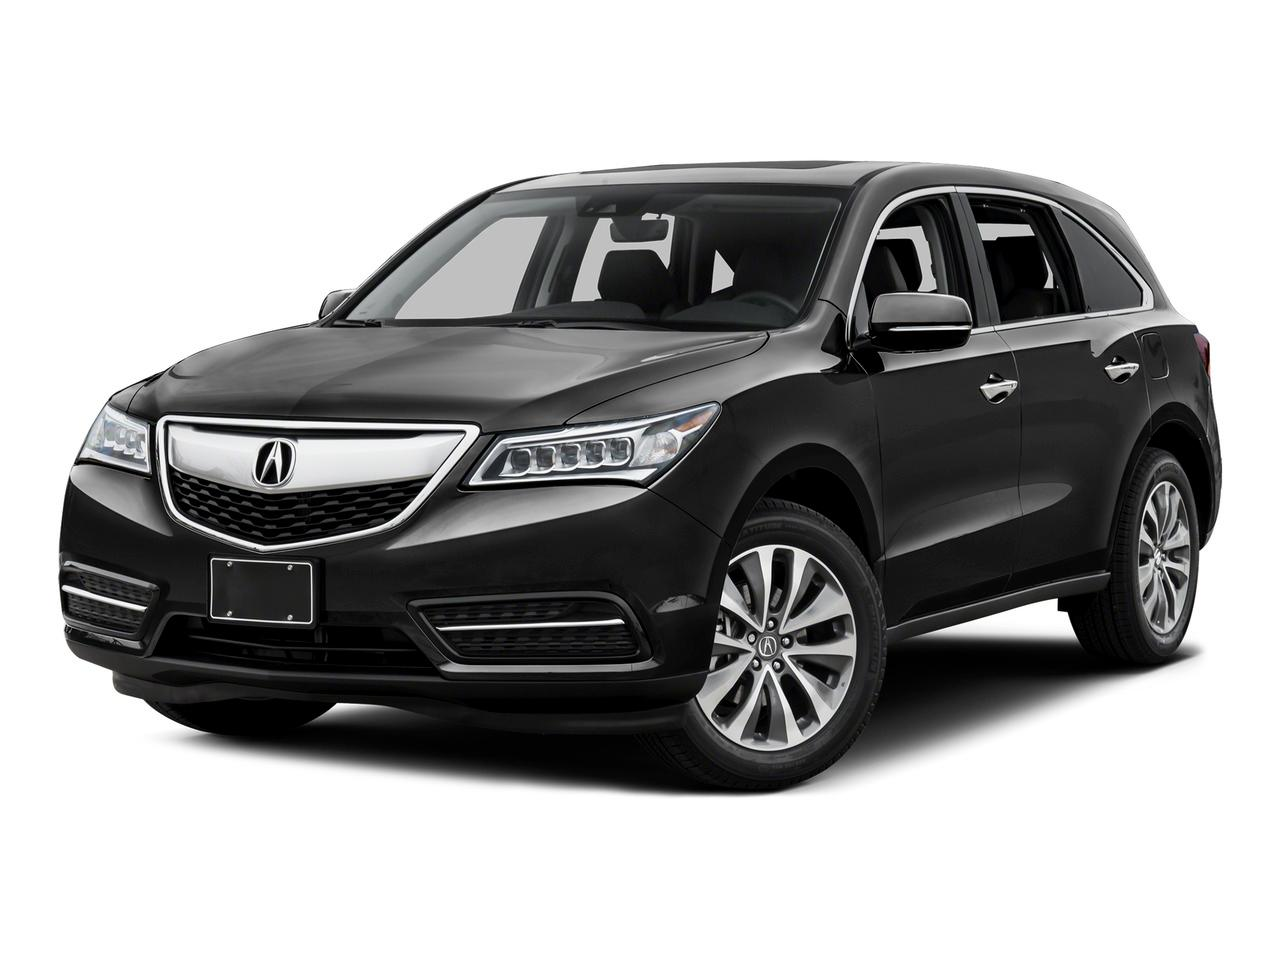 2016 Acura MDX Vehicle Photo in Nashville, TN 37203